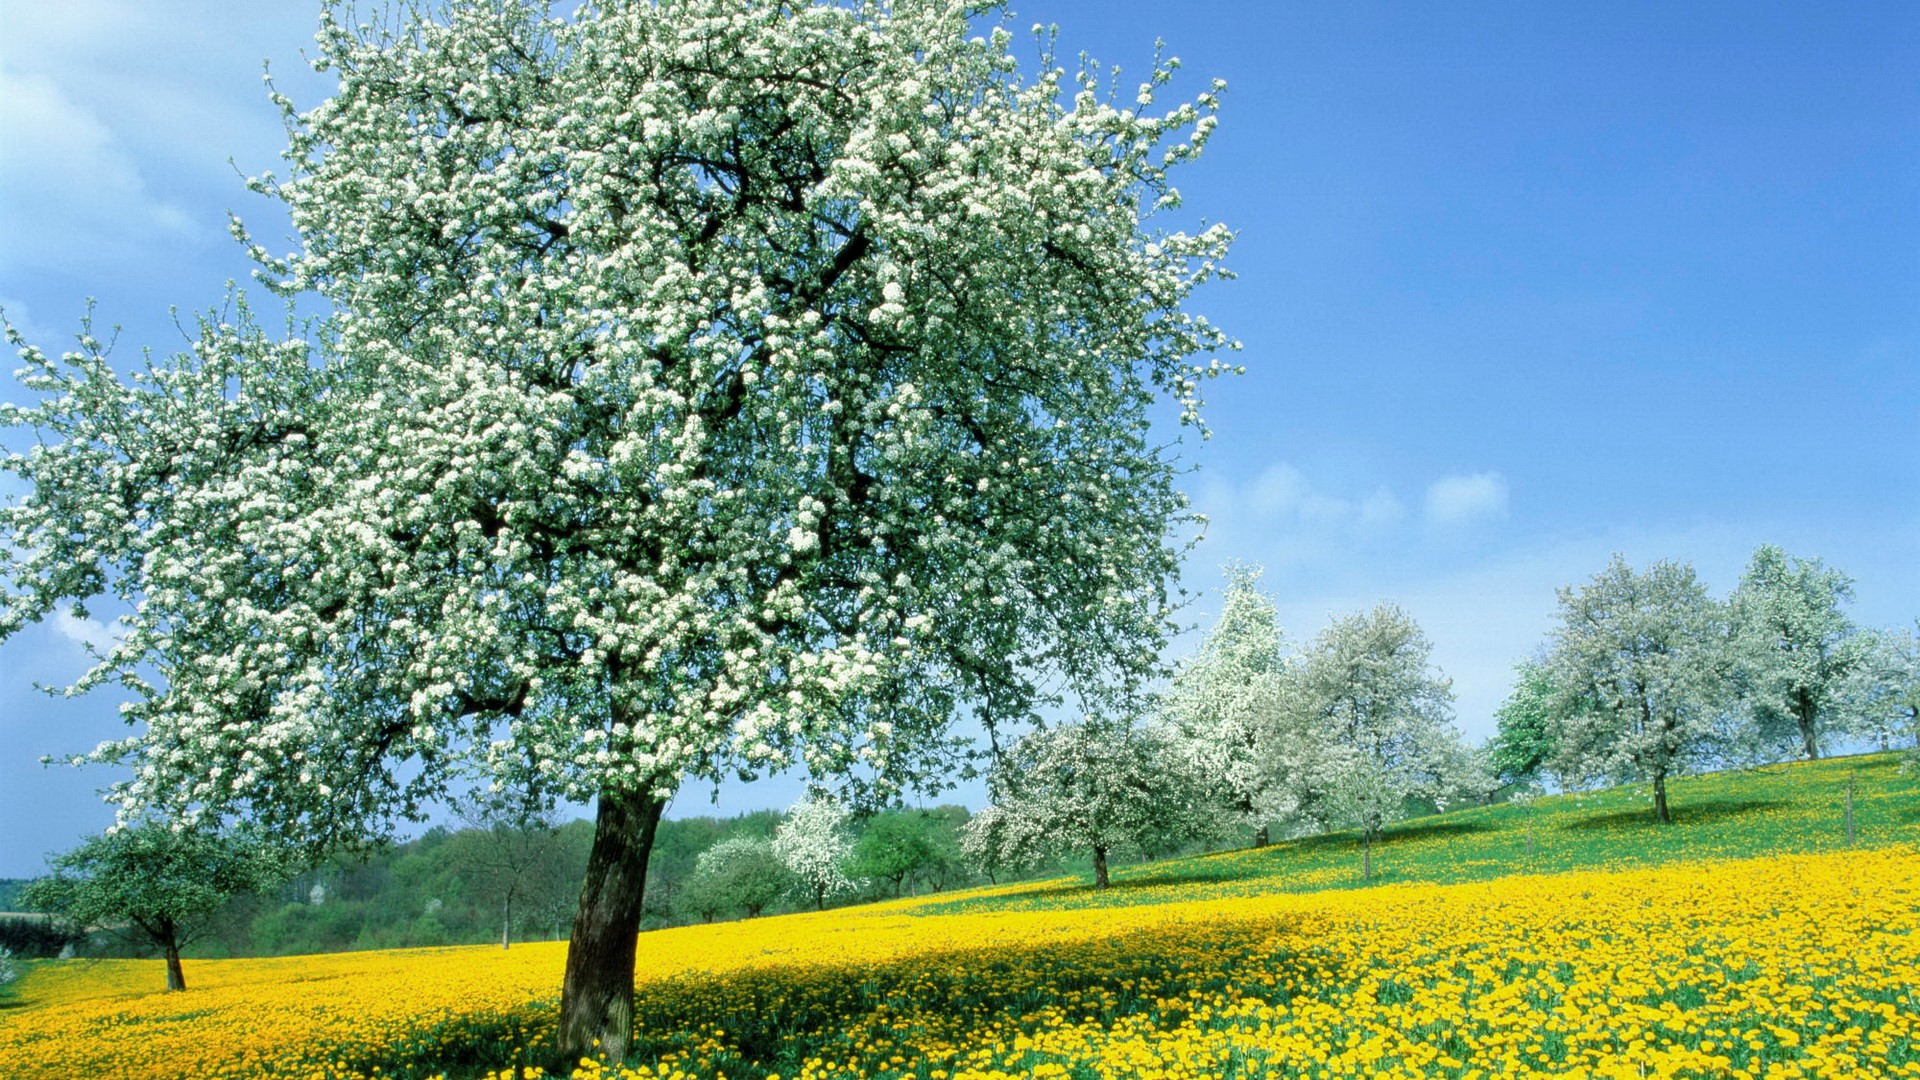 spring trees background - photo #21